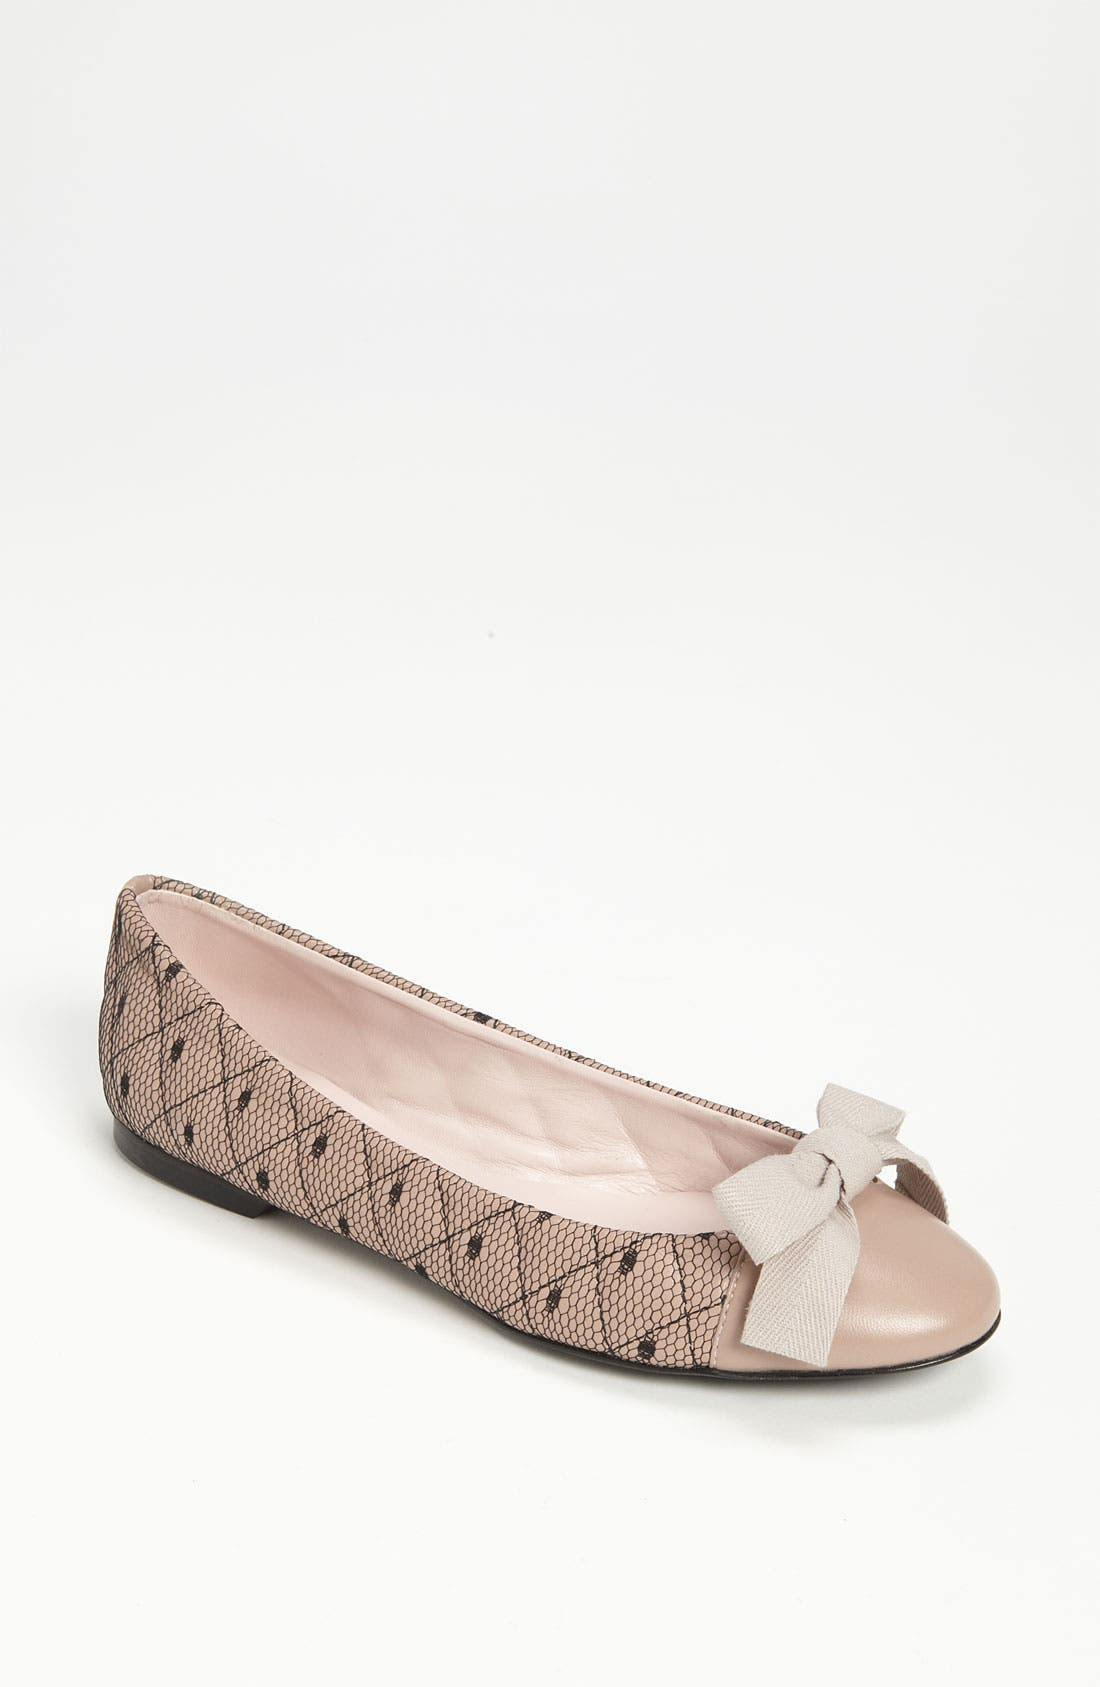 Main Image - RED Valentino 'Bow' Flat